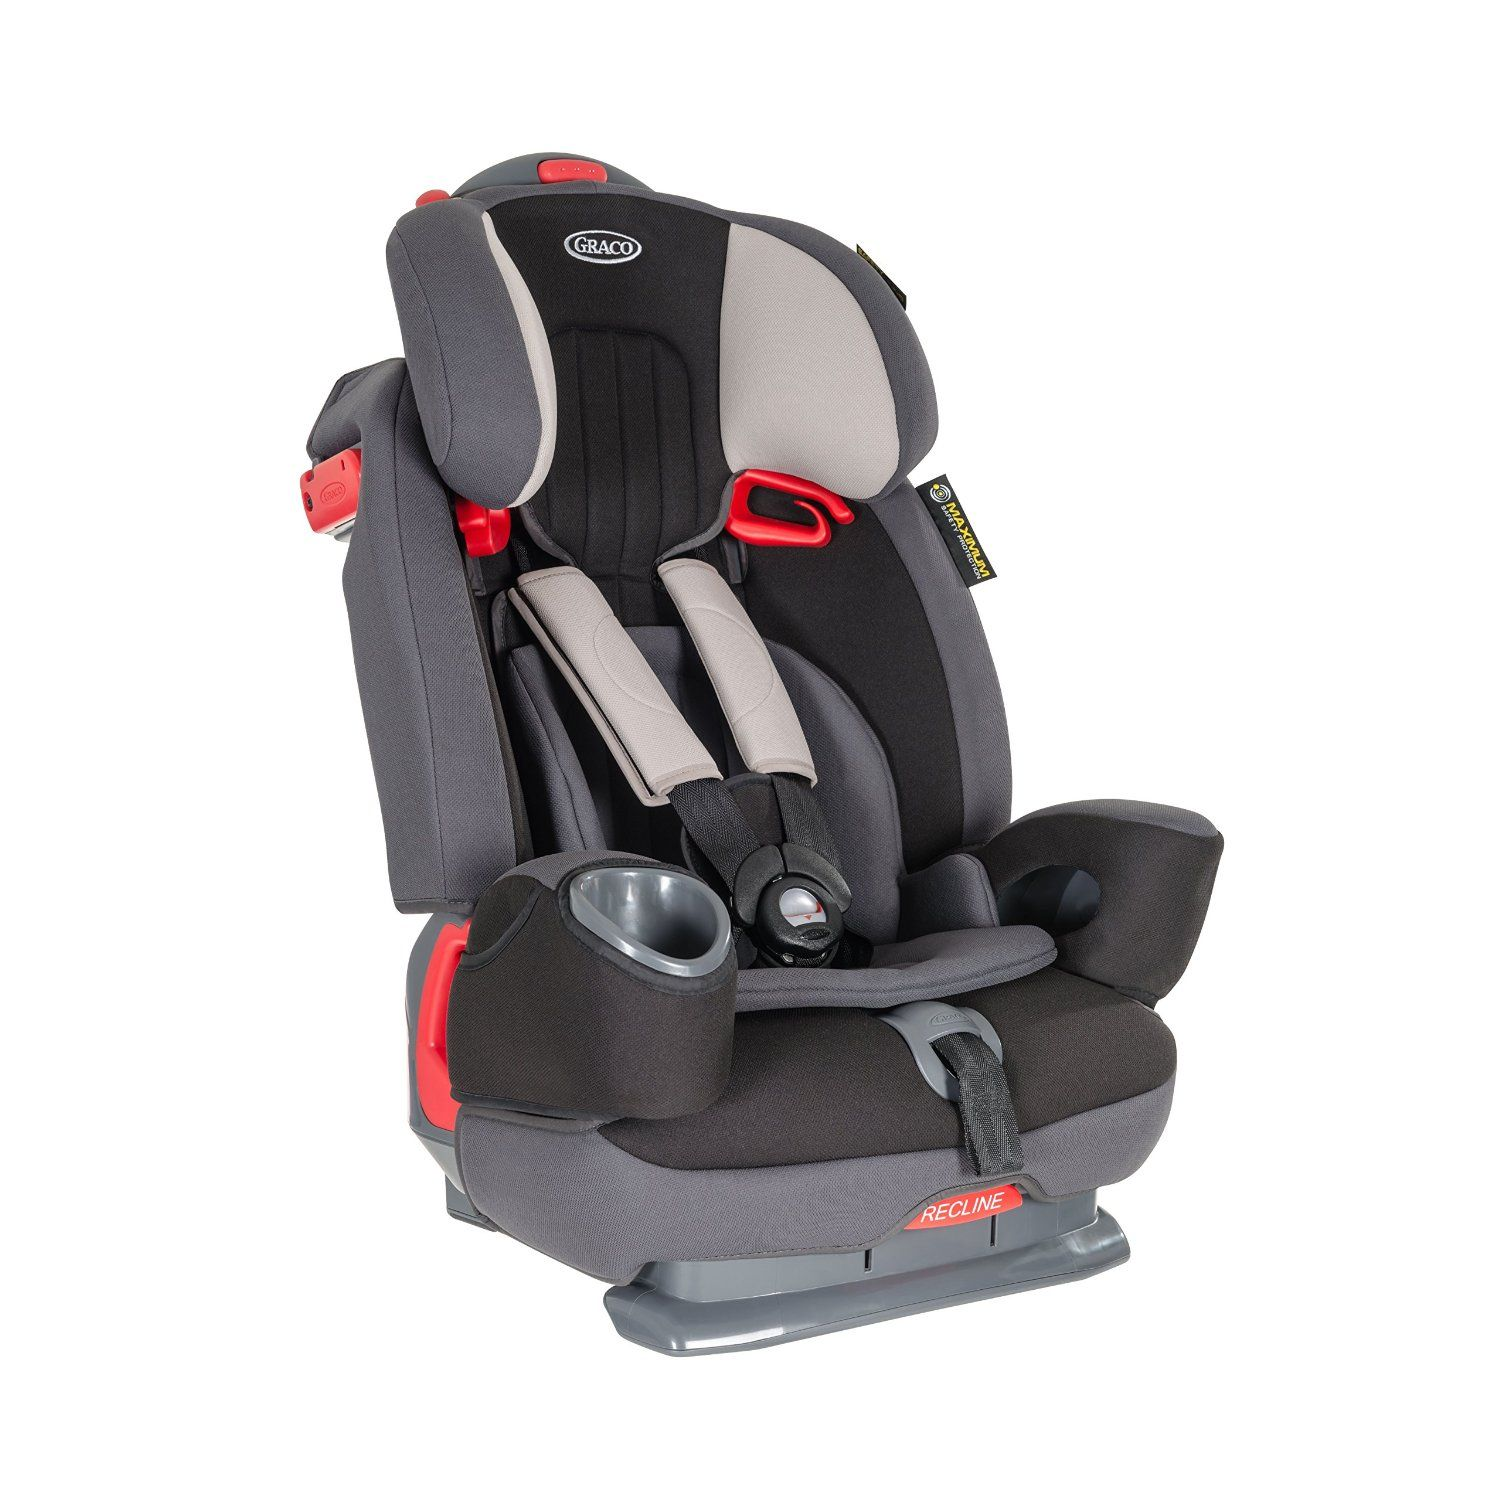 9d855a681cfe Graco Nautilus Elite Group 1/2/3 Car Seat - Aluminium: Amazon.co.uk: Baby